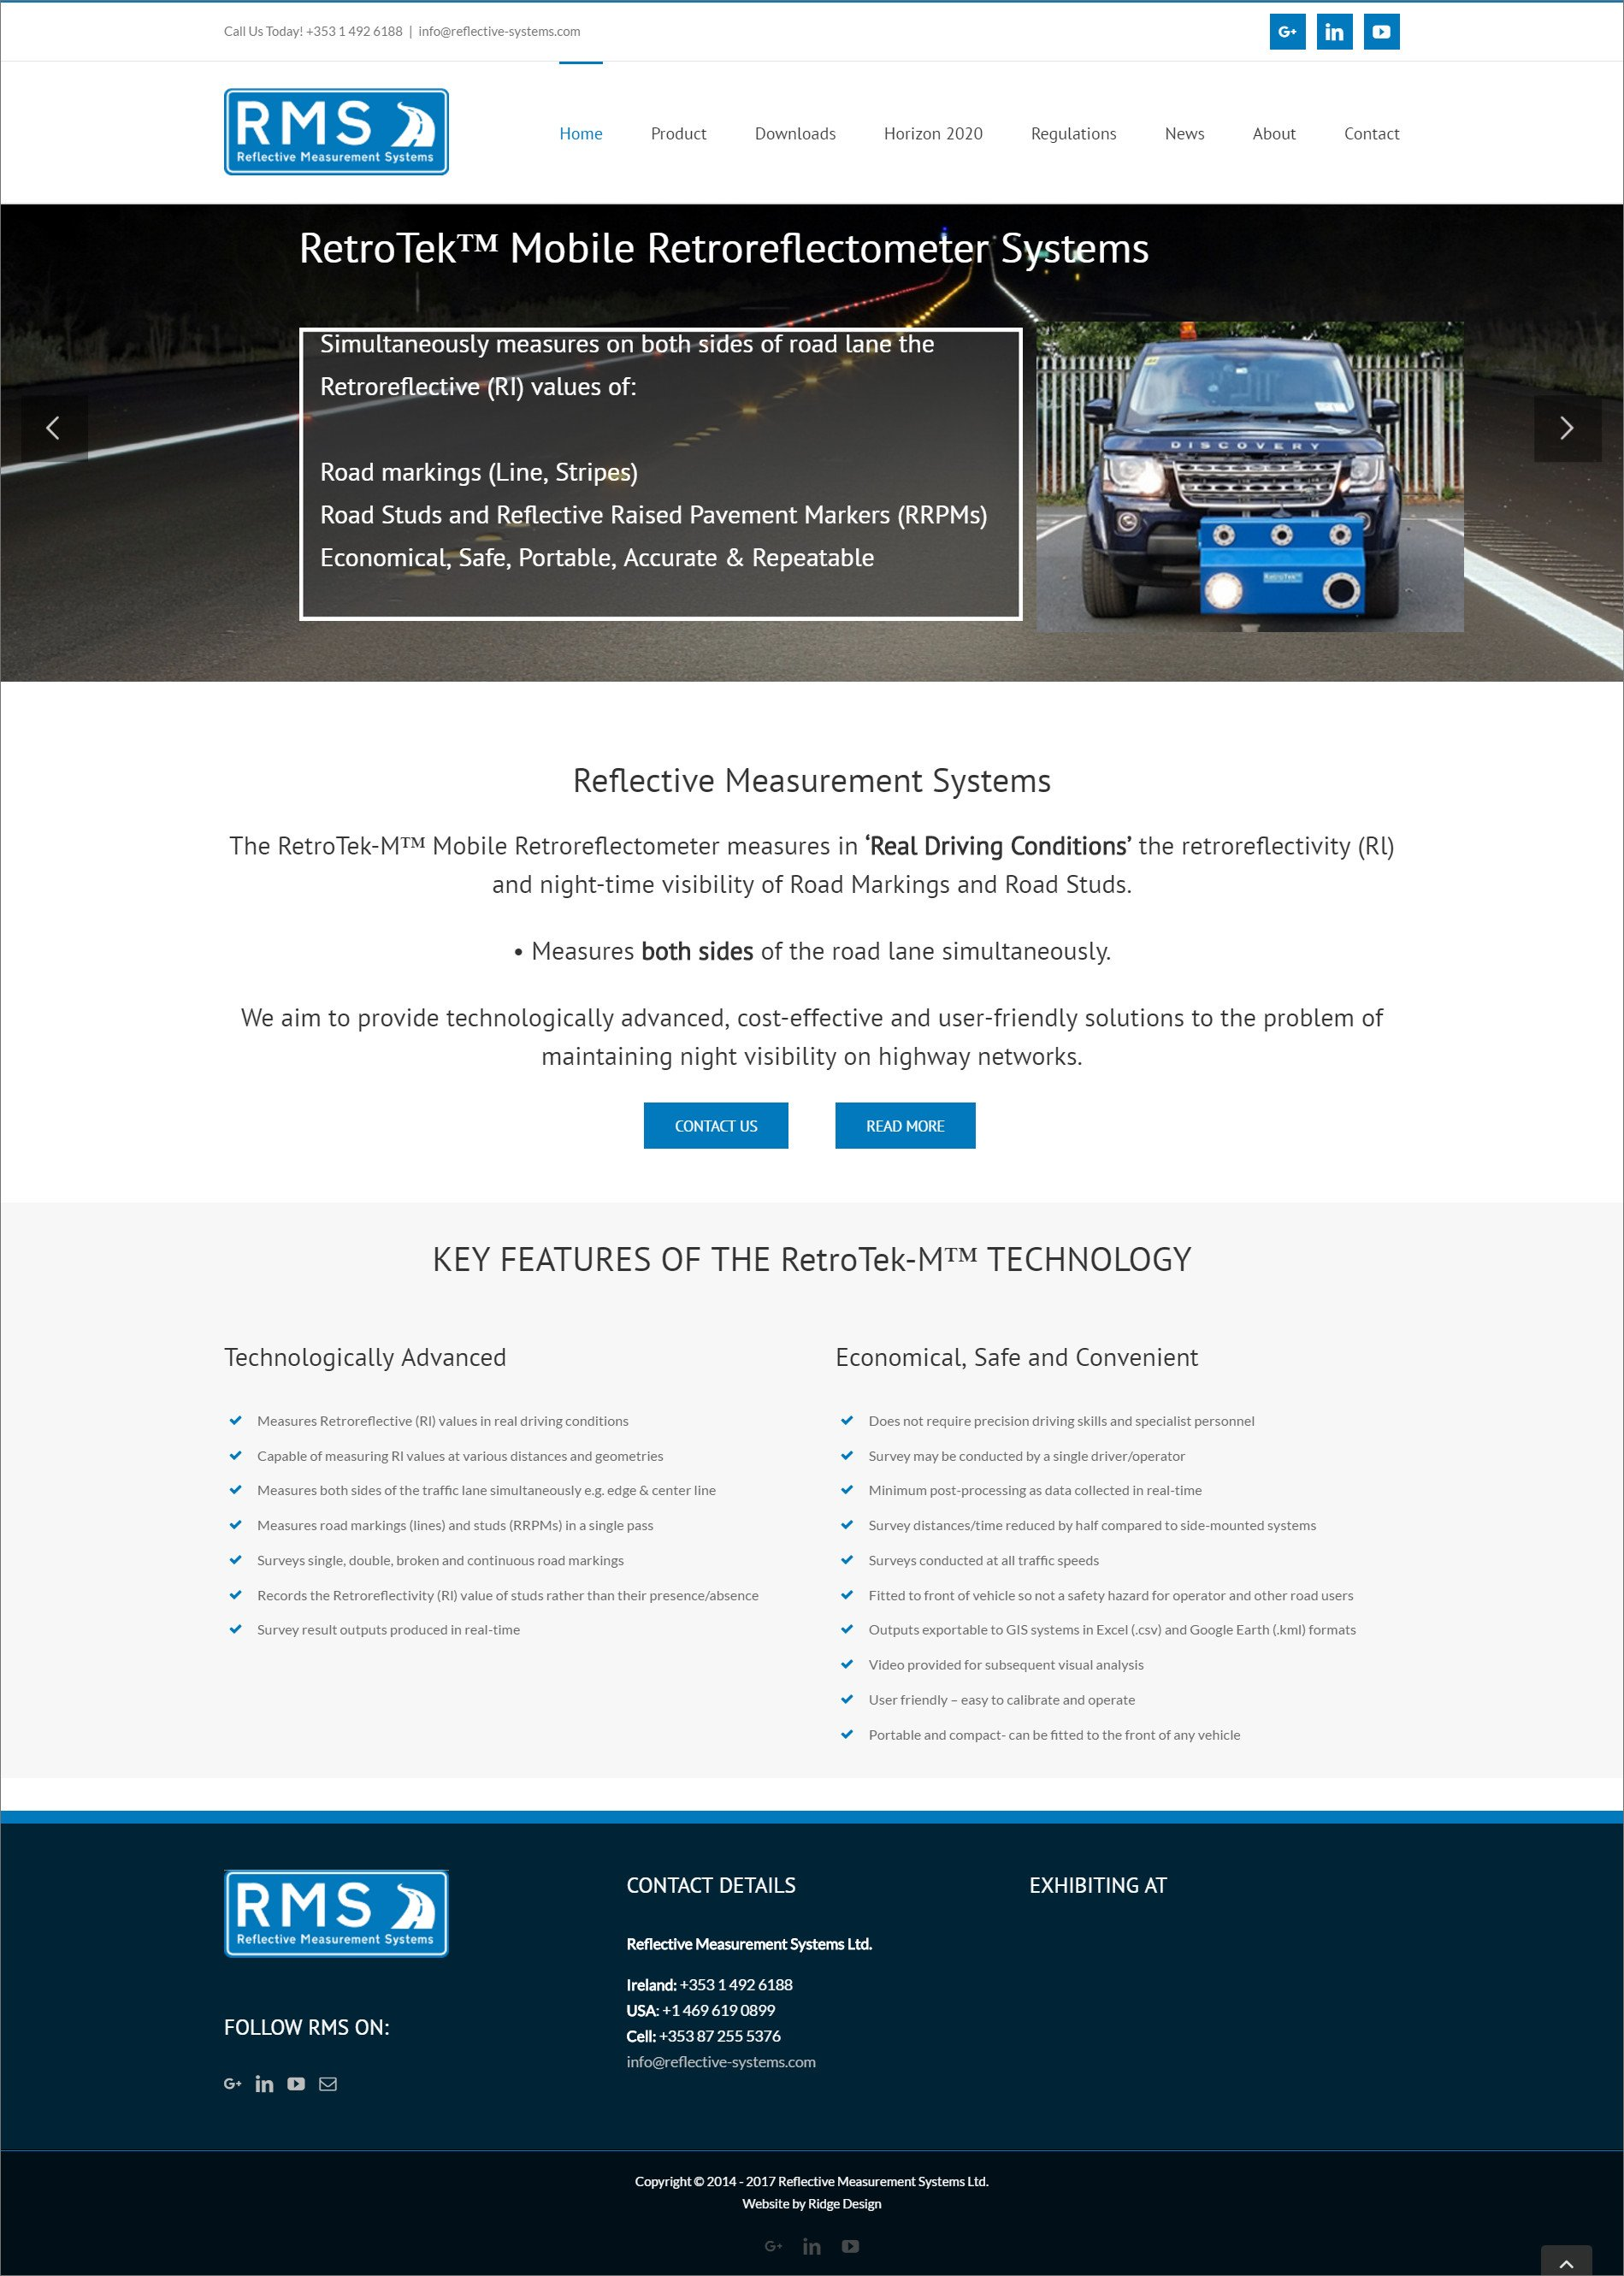 Website design for RMS design by Ridge Design home page visual